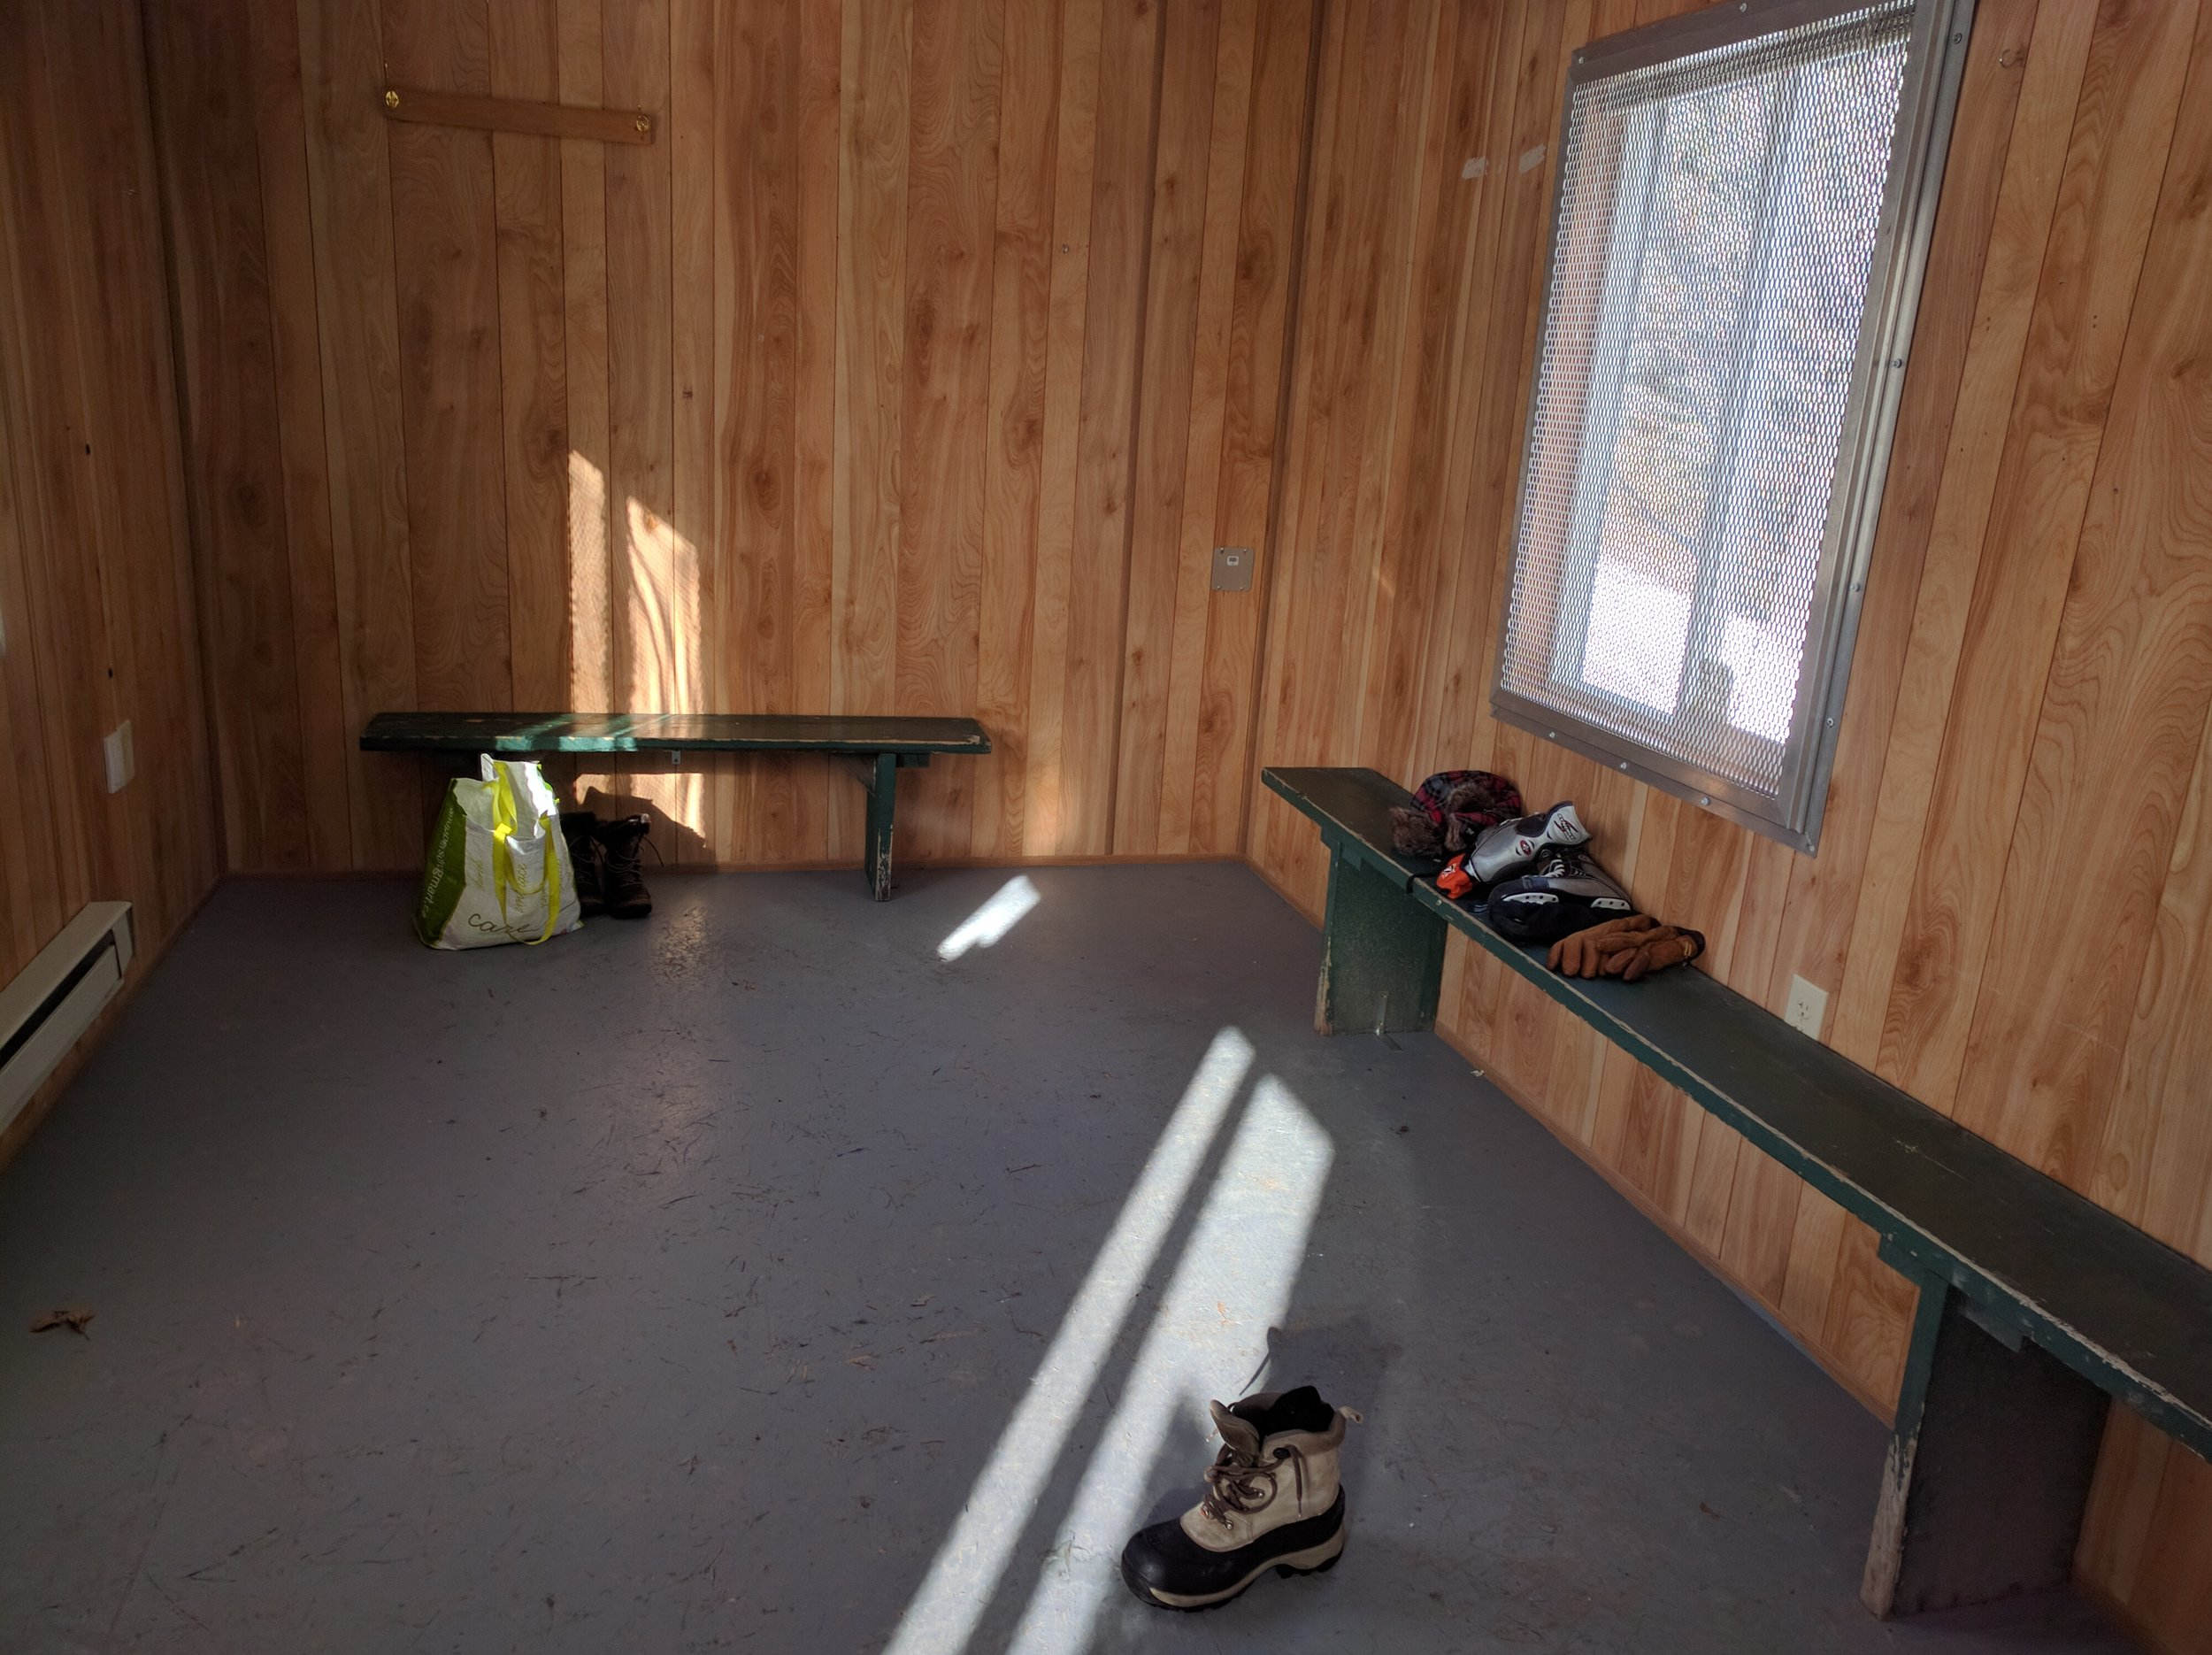 Changing room at Lansdowne Park Skating Court